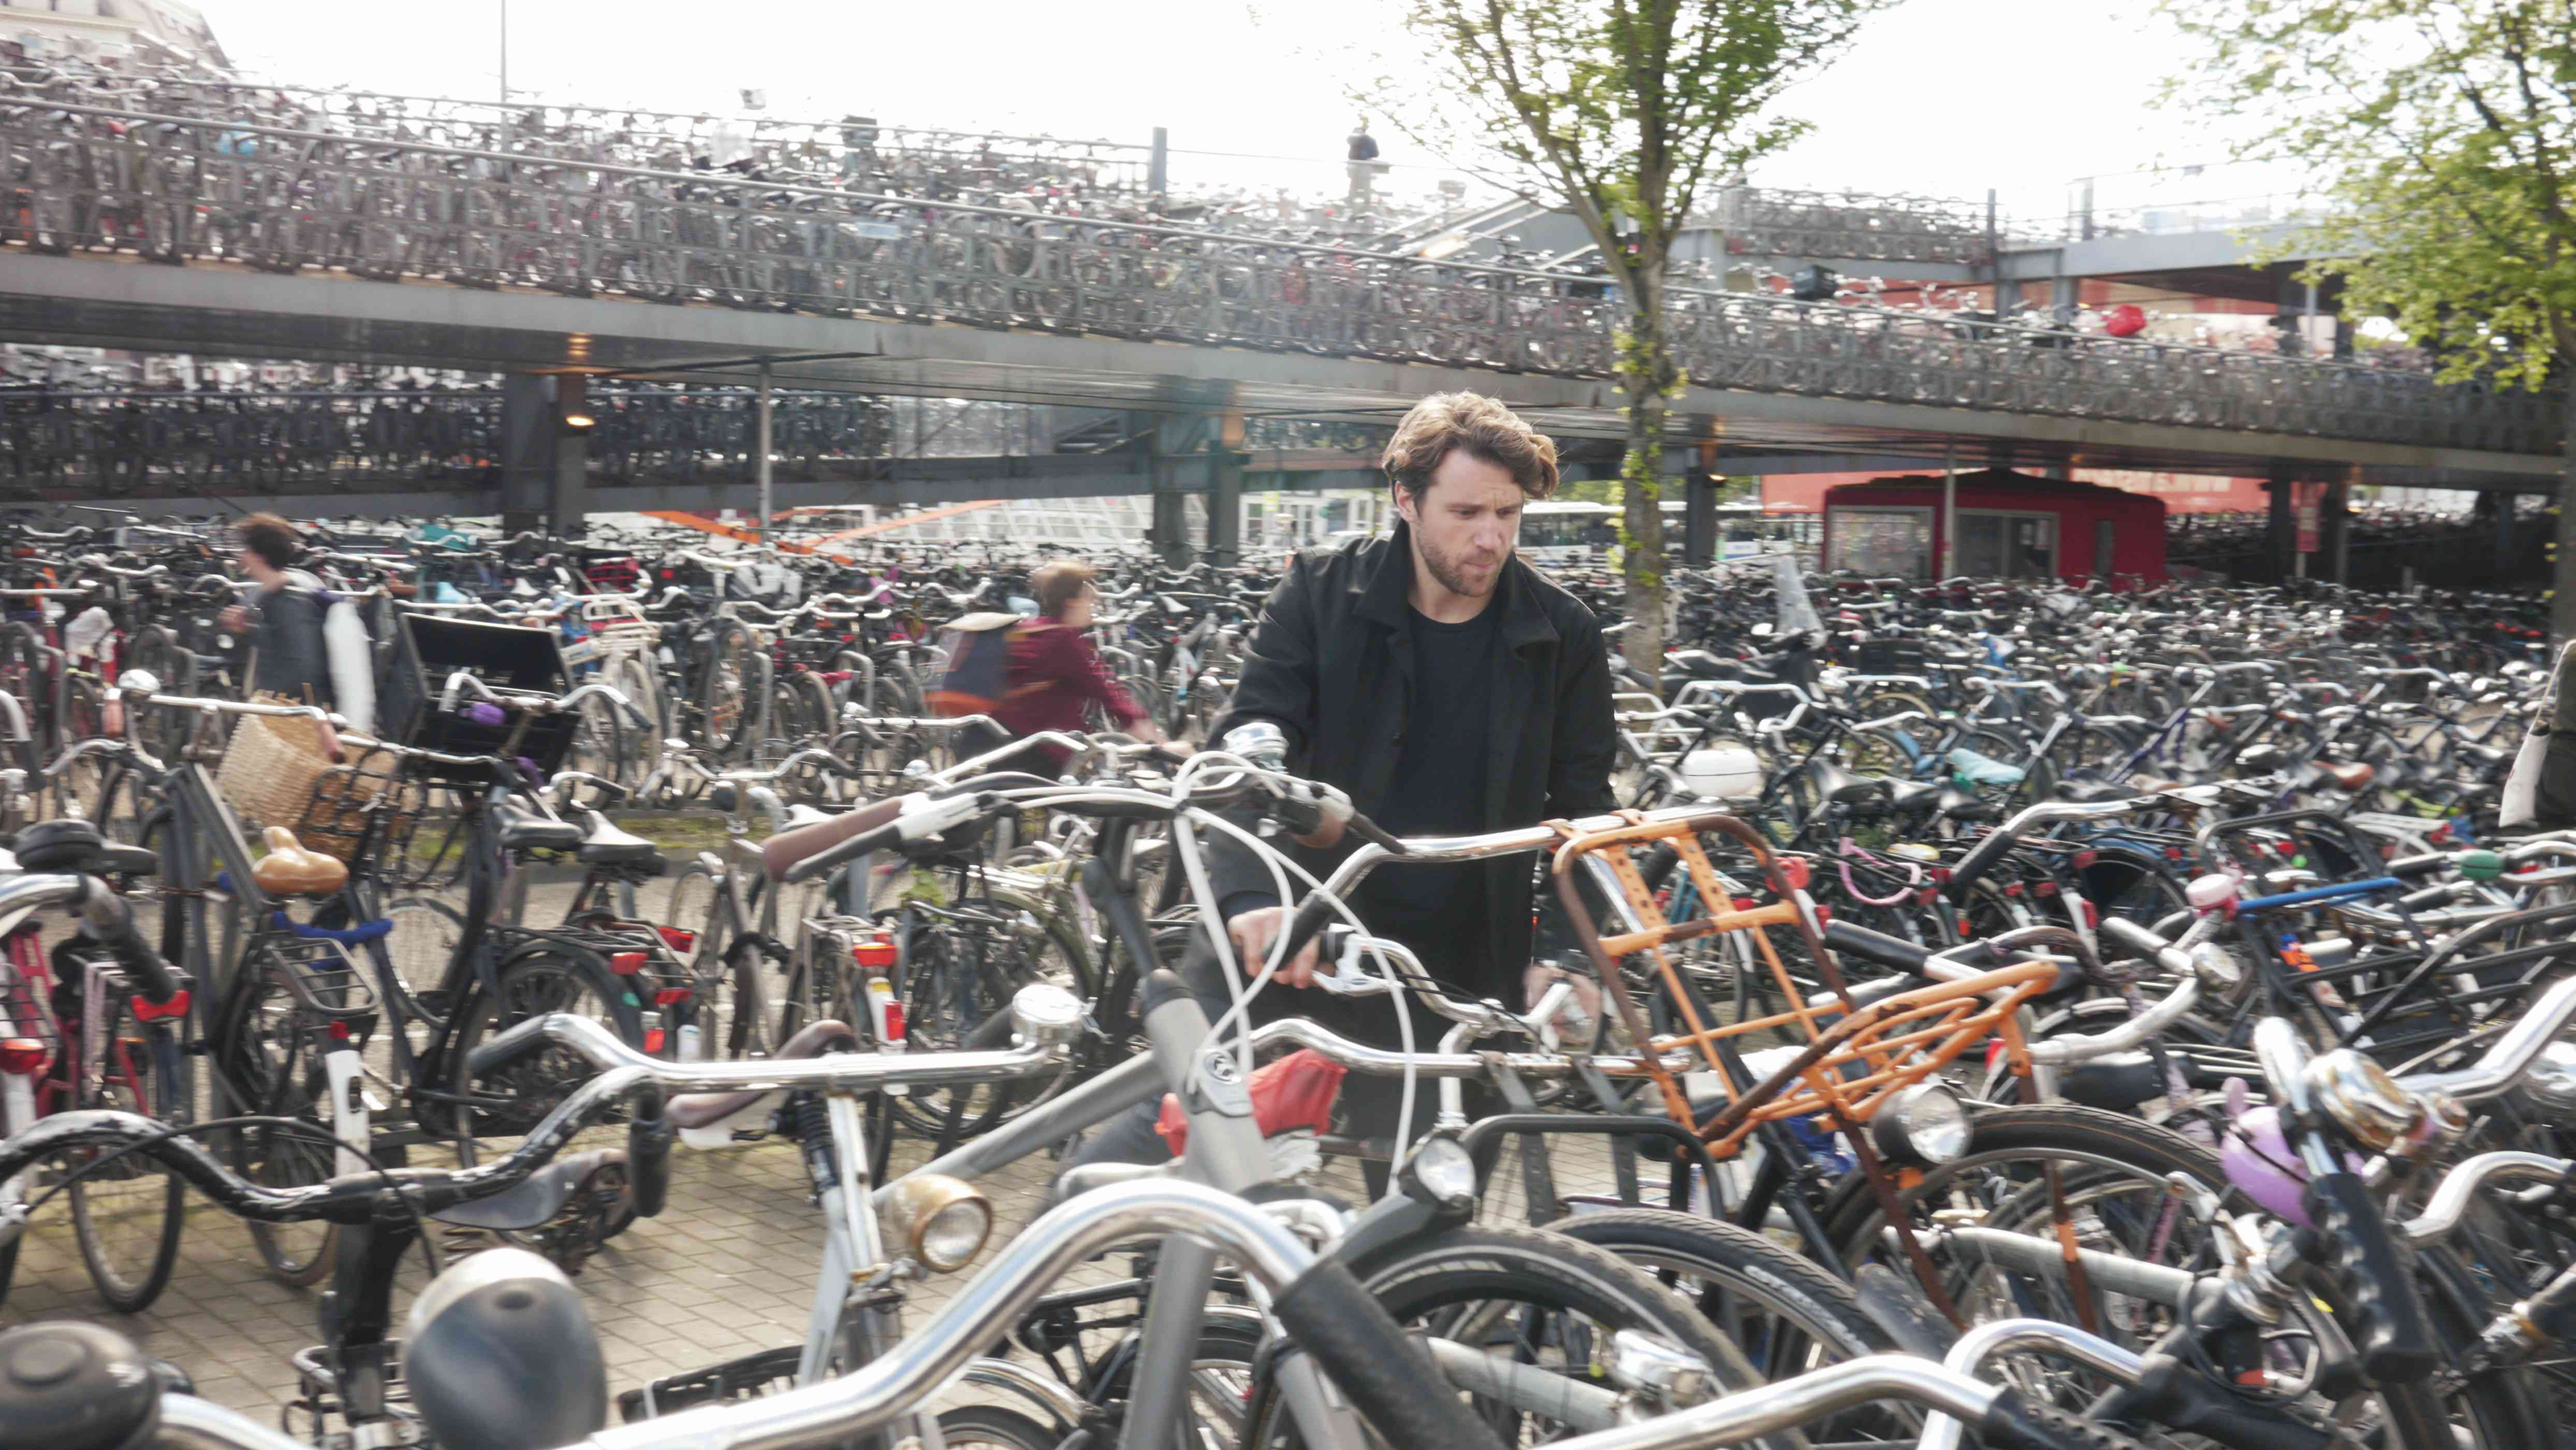 A crowded bike parking area in Amsterdam.